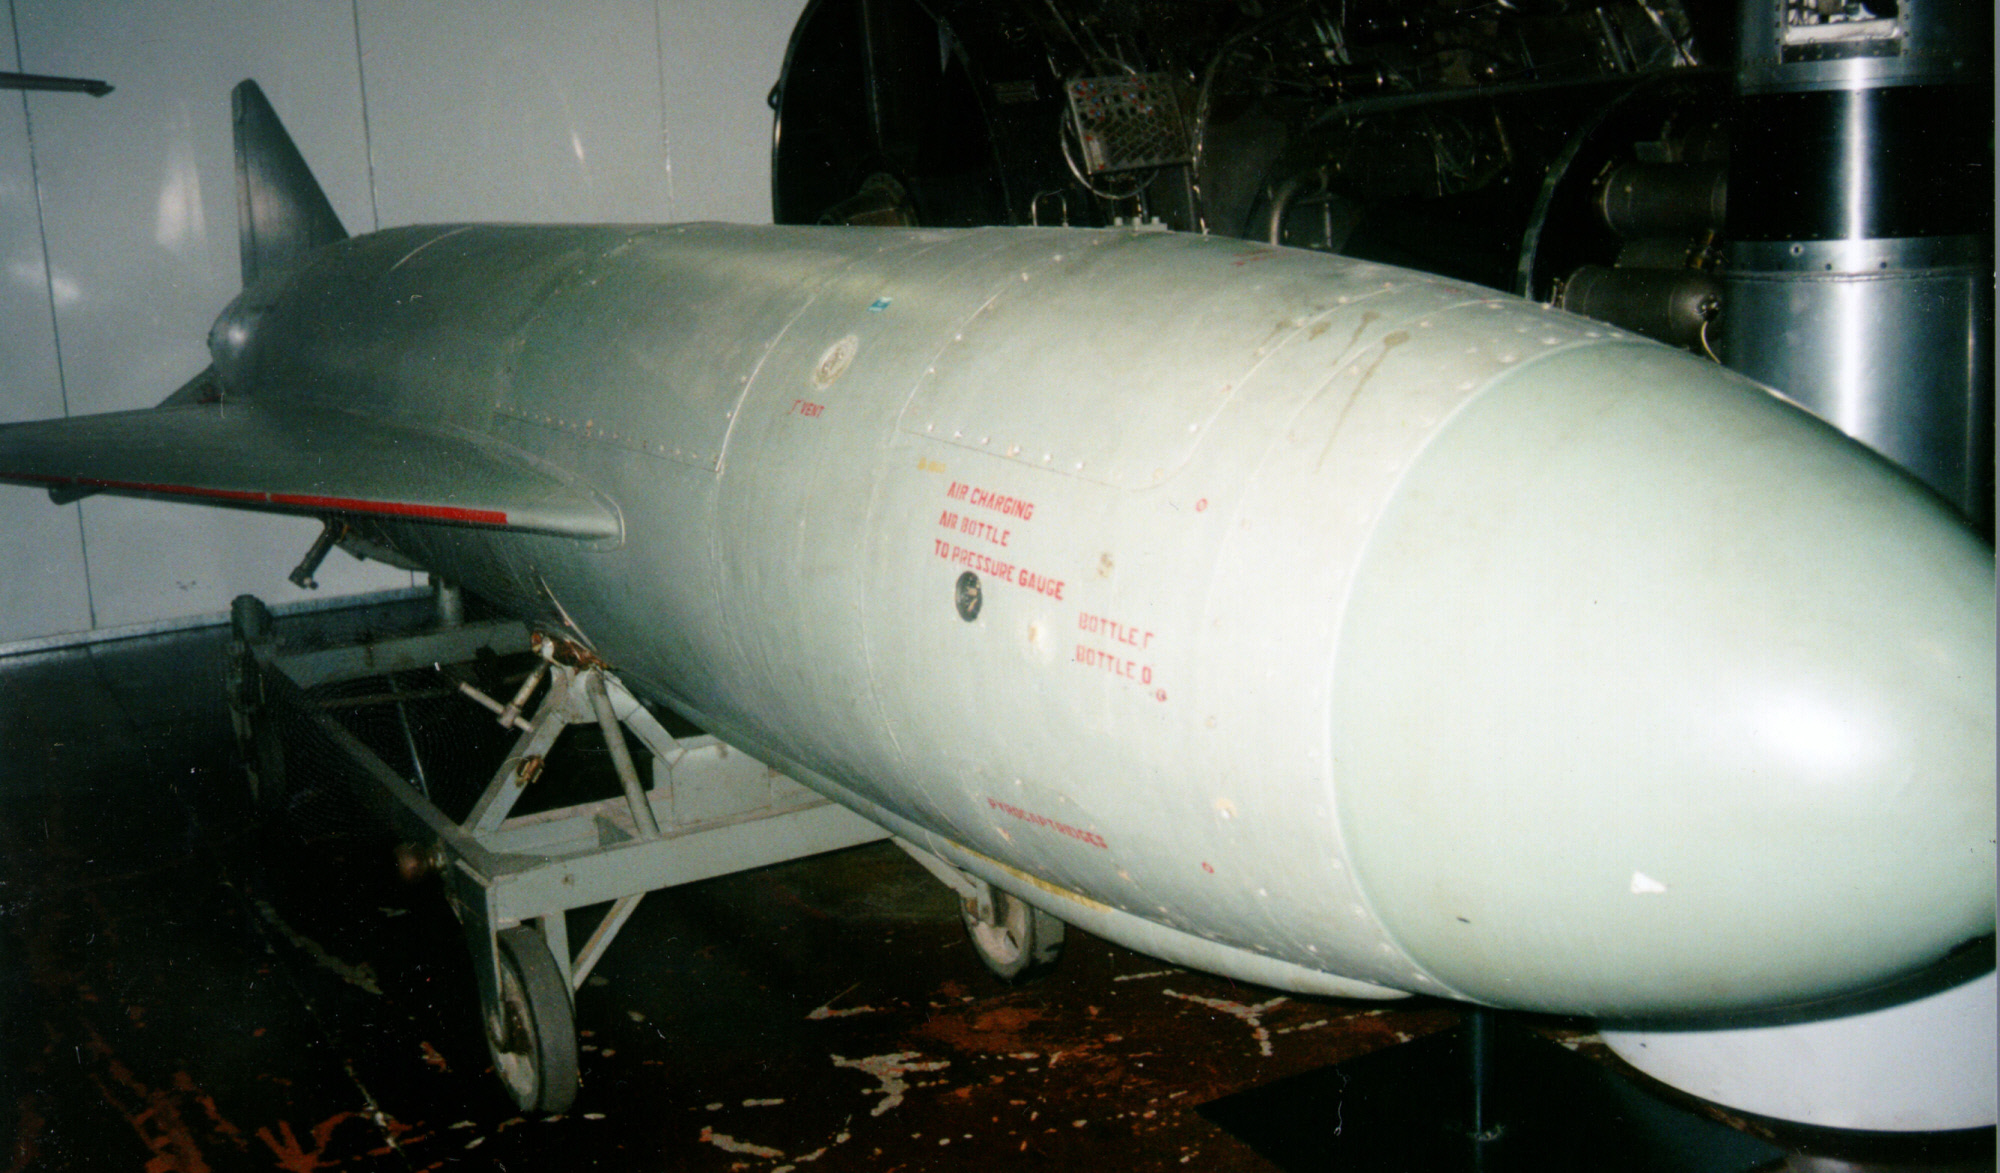 SS-N-2 Styx anti-ship missile. Photo credit: Smithsonian's National Air and Space Museum